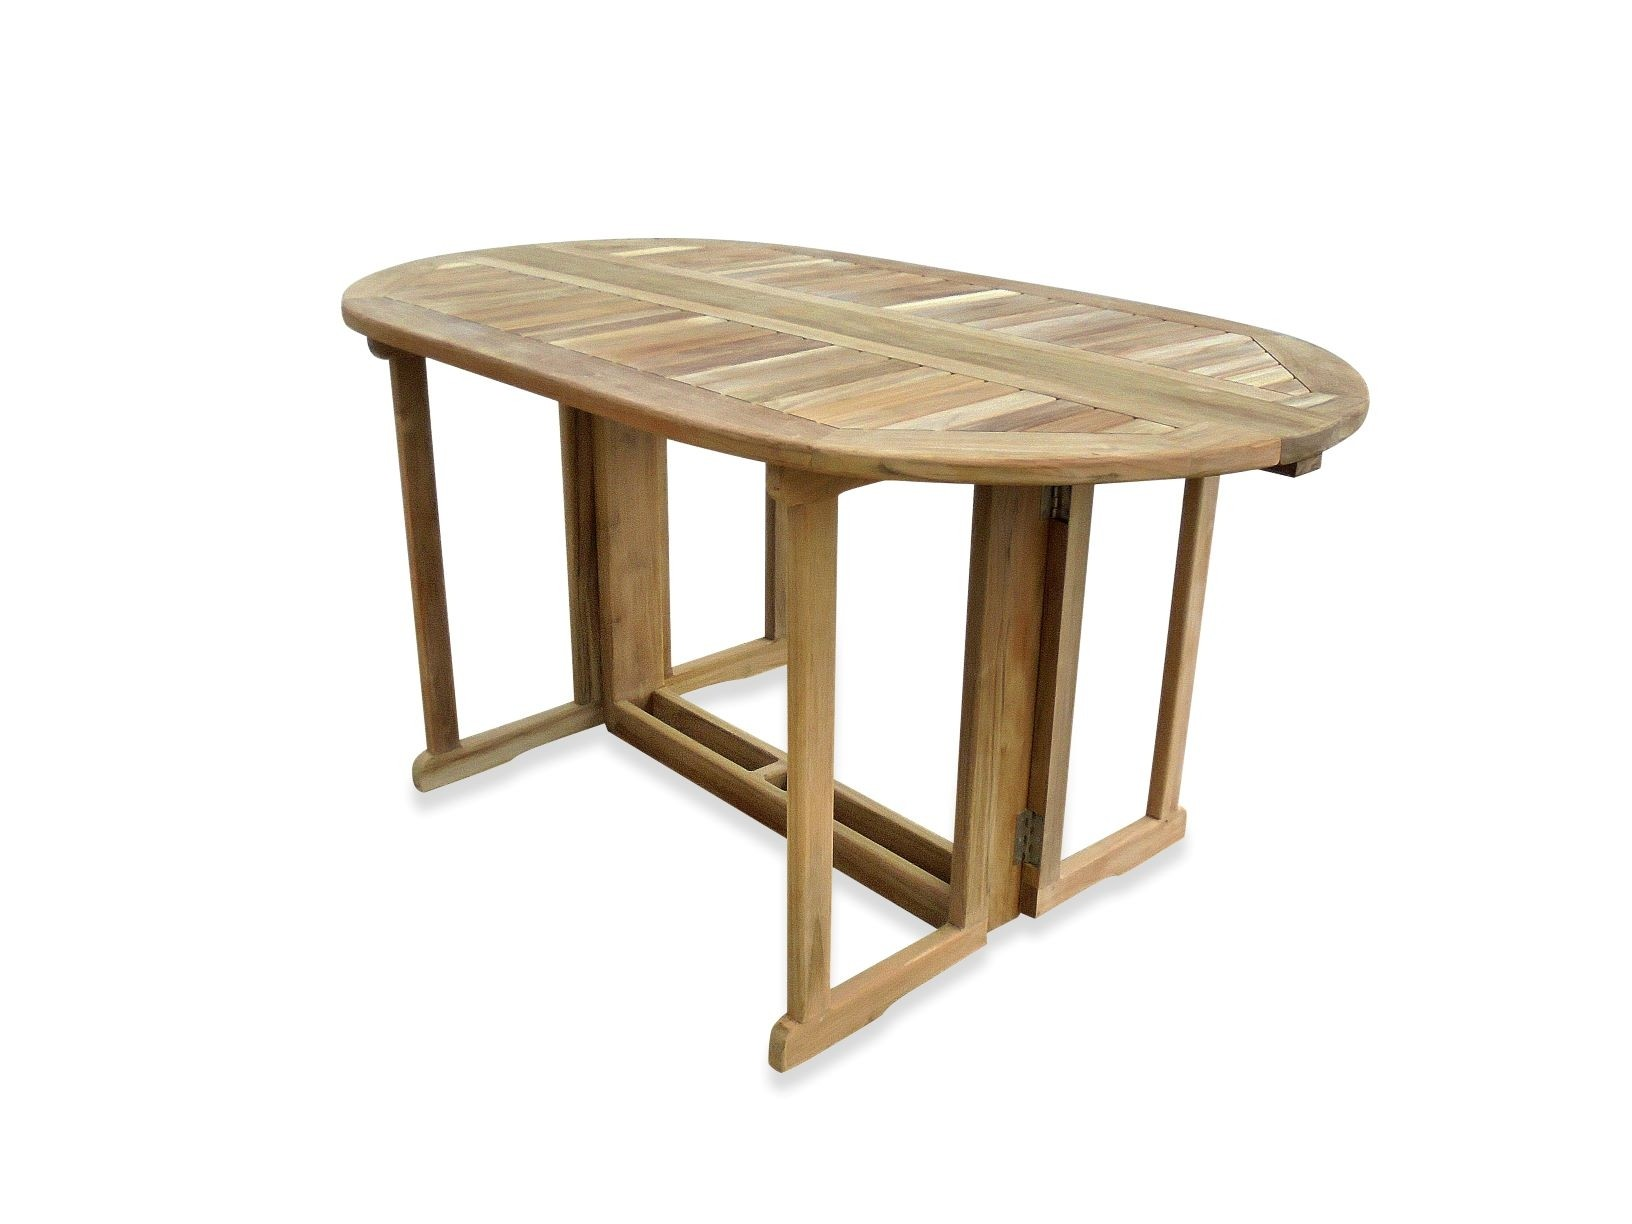 "Barcelona 60"" x 35"" Oval Drop Leaf Folding Dining Teak Table...use with 1 Leaf Up or 2.... Makes 2 different tables"